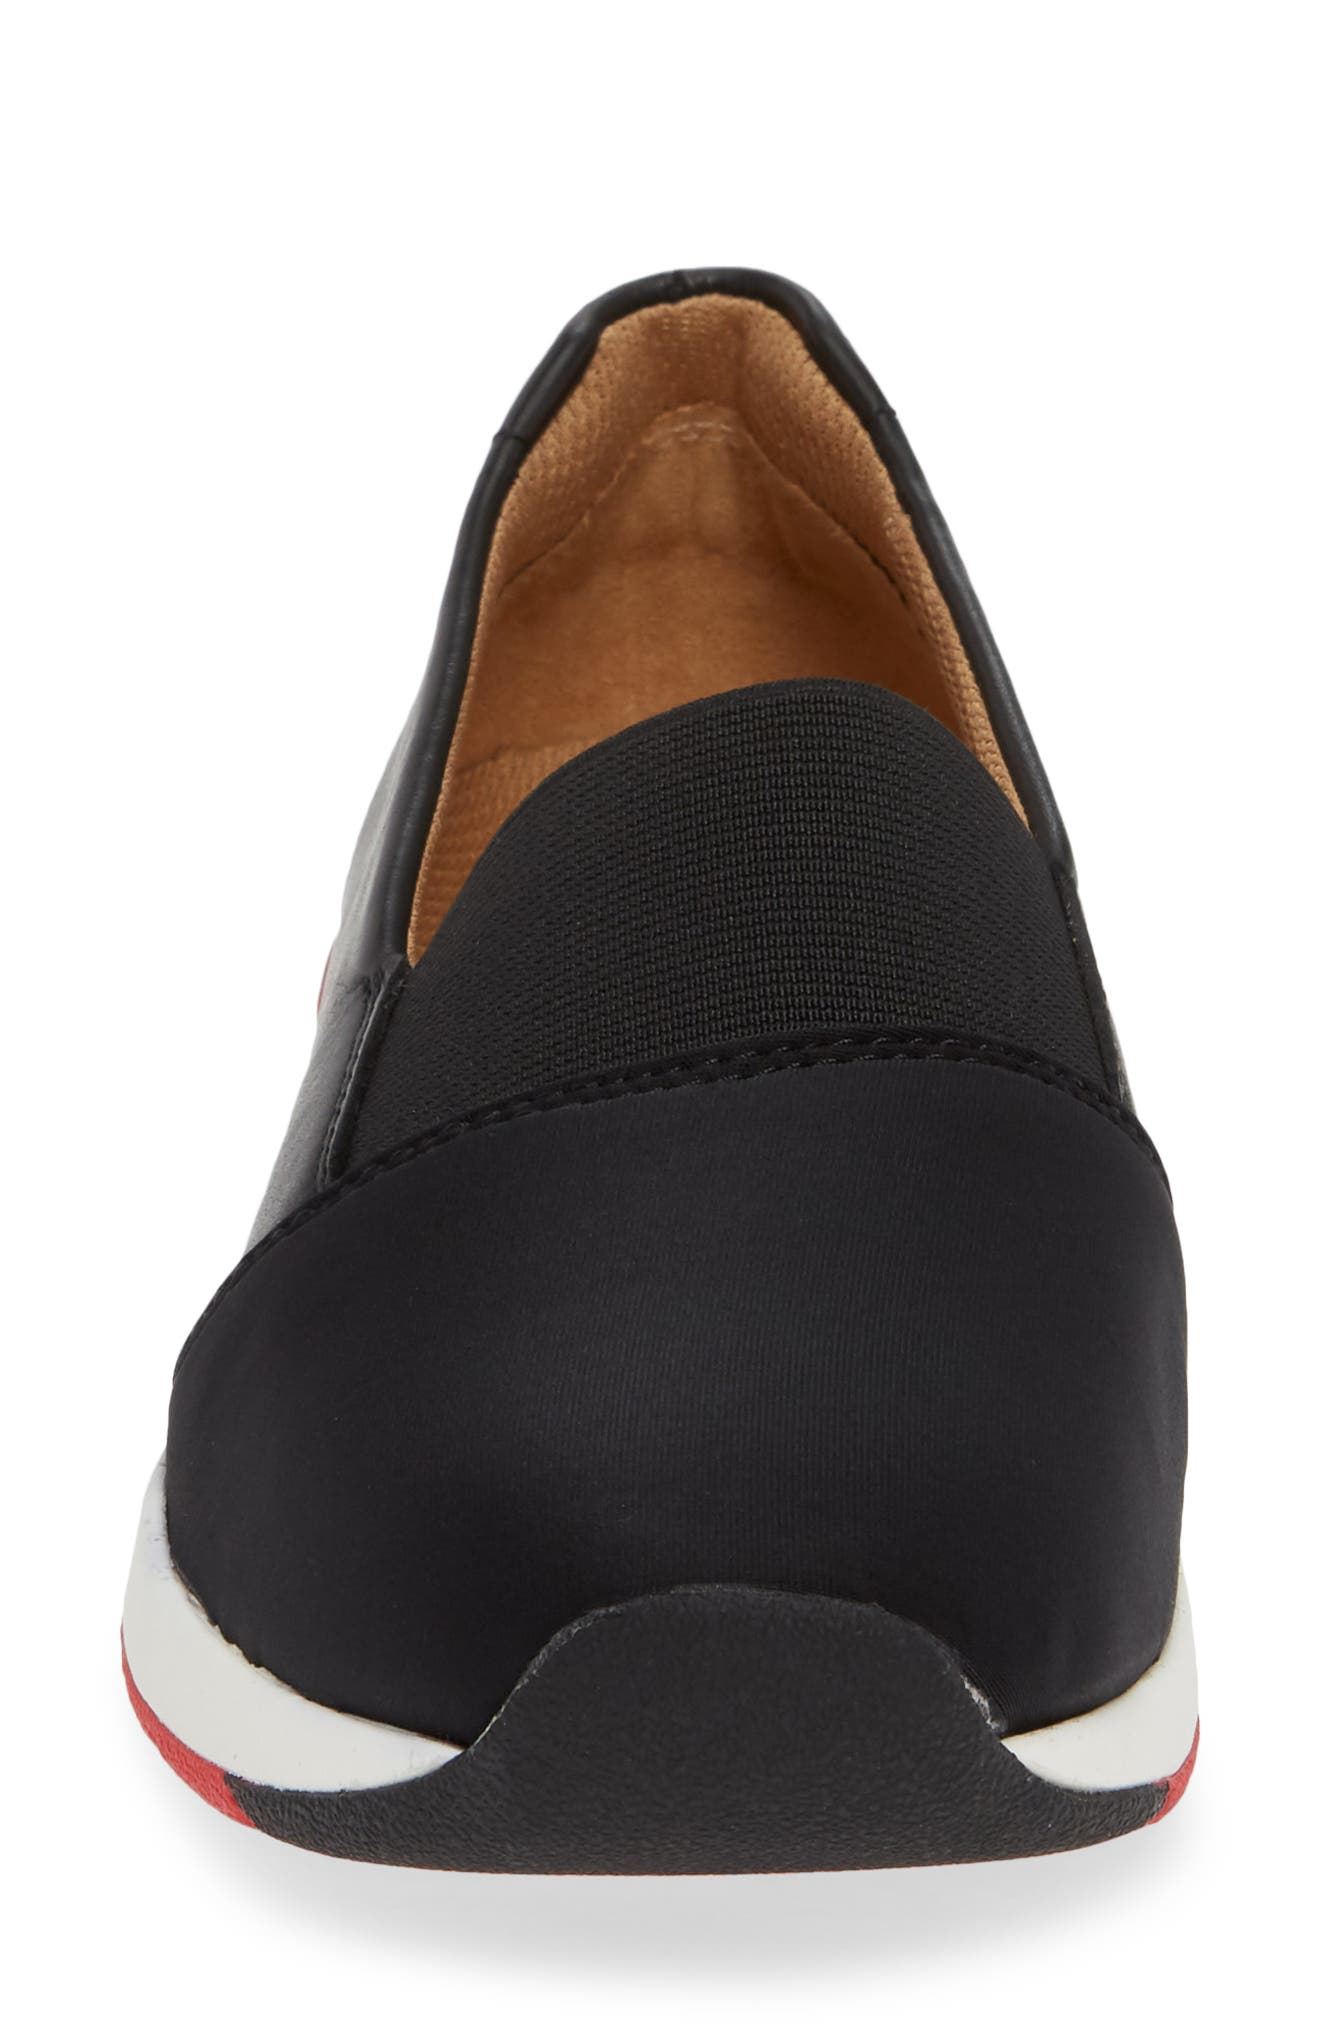 Cameo Slip-On Shoe,                             Alternate thumbnail 4, color,                             BLACK LEATHER NEOPRENE